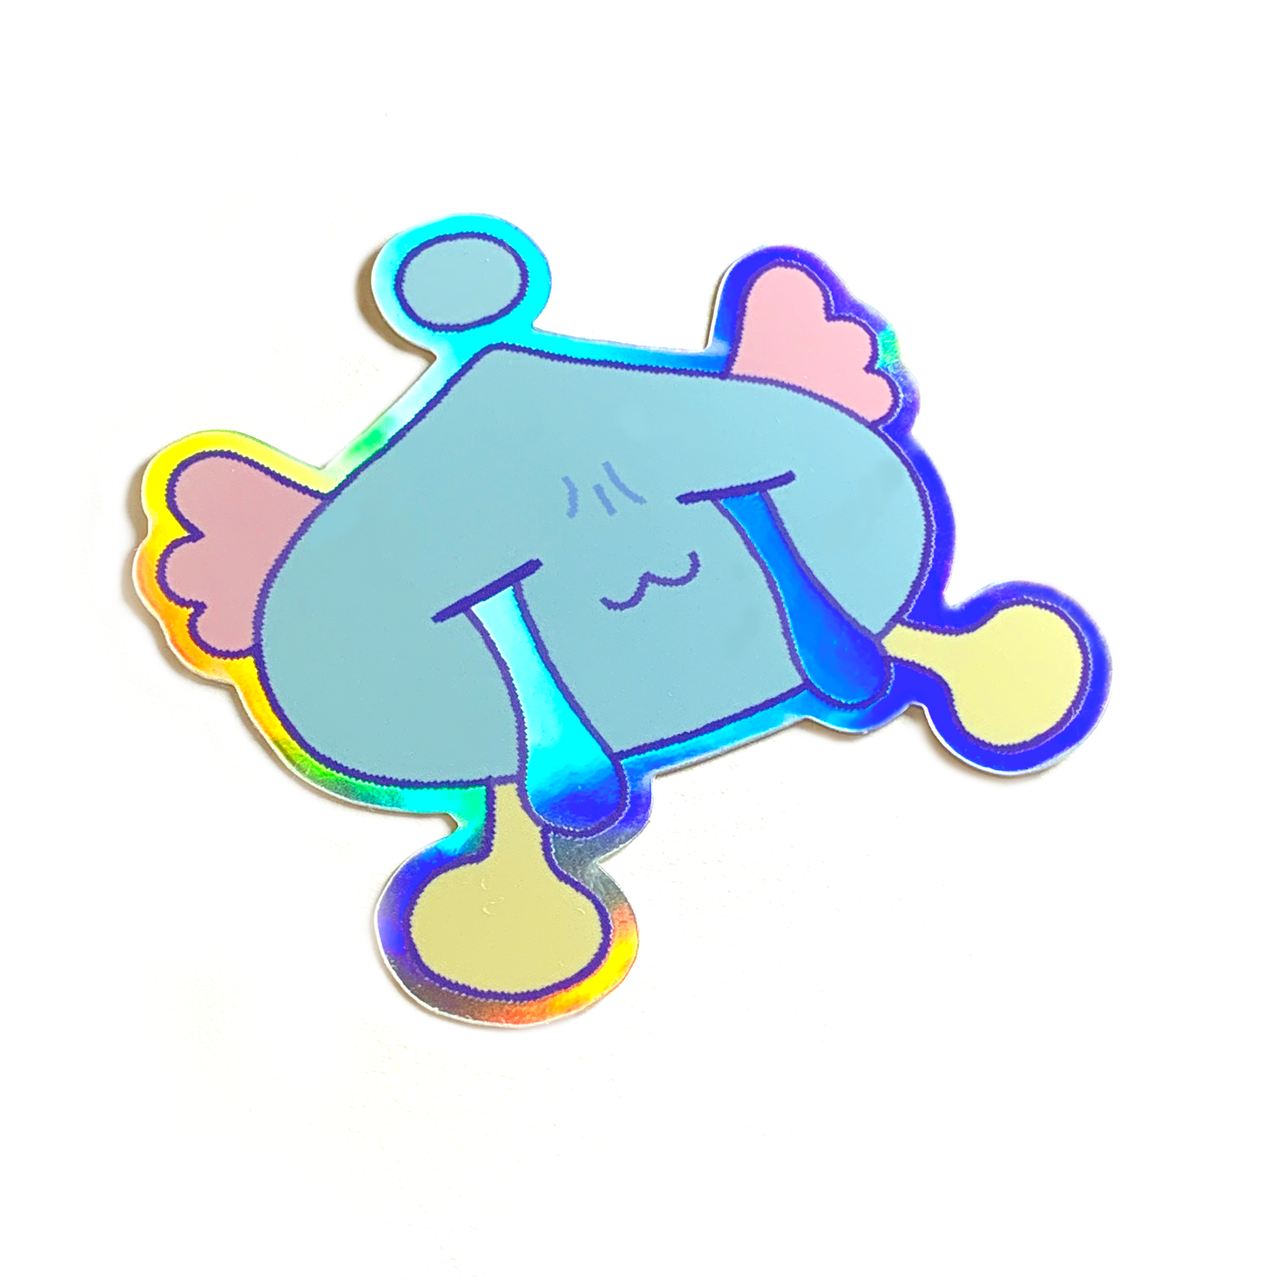 Teary Puni ~ holographic sticker